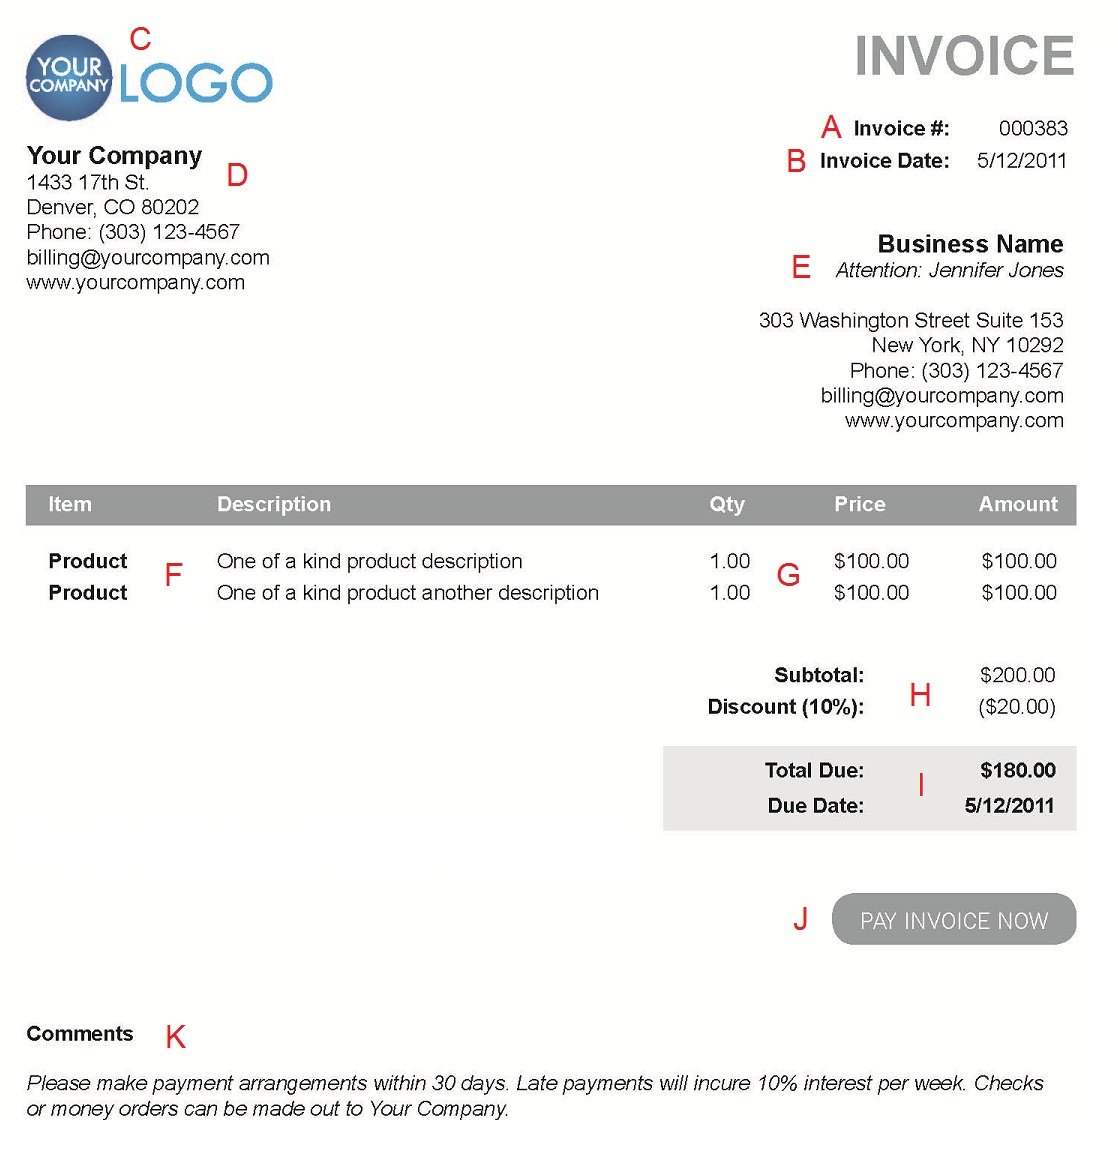 Occupyhistoryus  Pleasing The  Different Sections Of An Electronic Payment Invoice With Lovely A  With Amusing Excel Invoice Template Australia Also Audi Invoice In Addition Rental Invoice Format And Invoice Factoring Companies Uk As Well As Invoice Design Software Additionally Terms And Conditions For Payment Of Invoices From Paysimplecom With Occupyhistoryus  Lovely The  Different Sections Of An Electronic Payment Invoice With Amusing A  And Pleasing Excel Invoice Template Australia Also Audi Invoice In Addition Rental Invoice Format From Paysimplecom